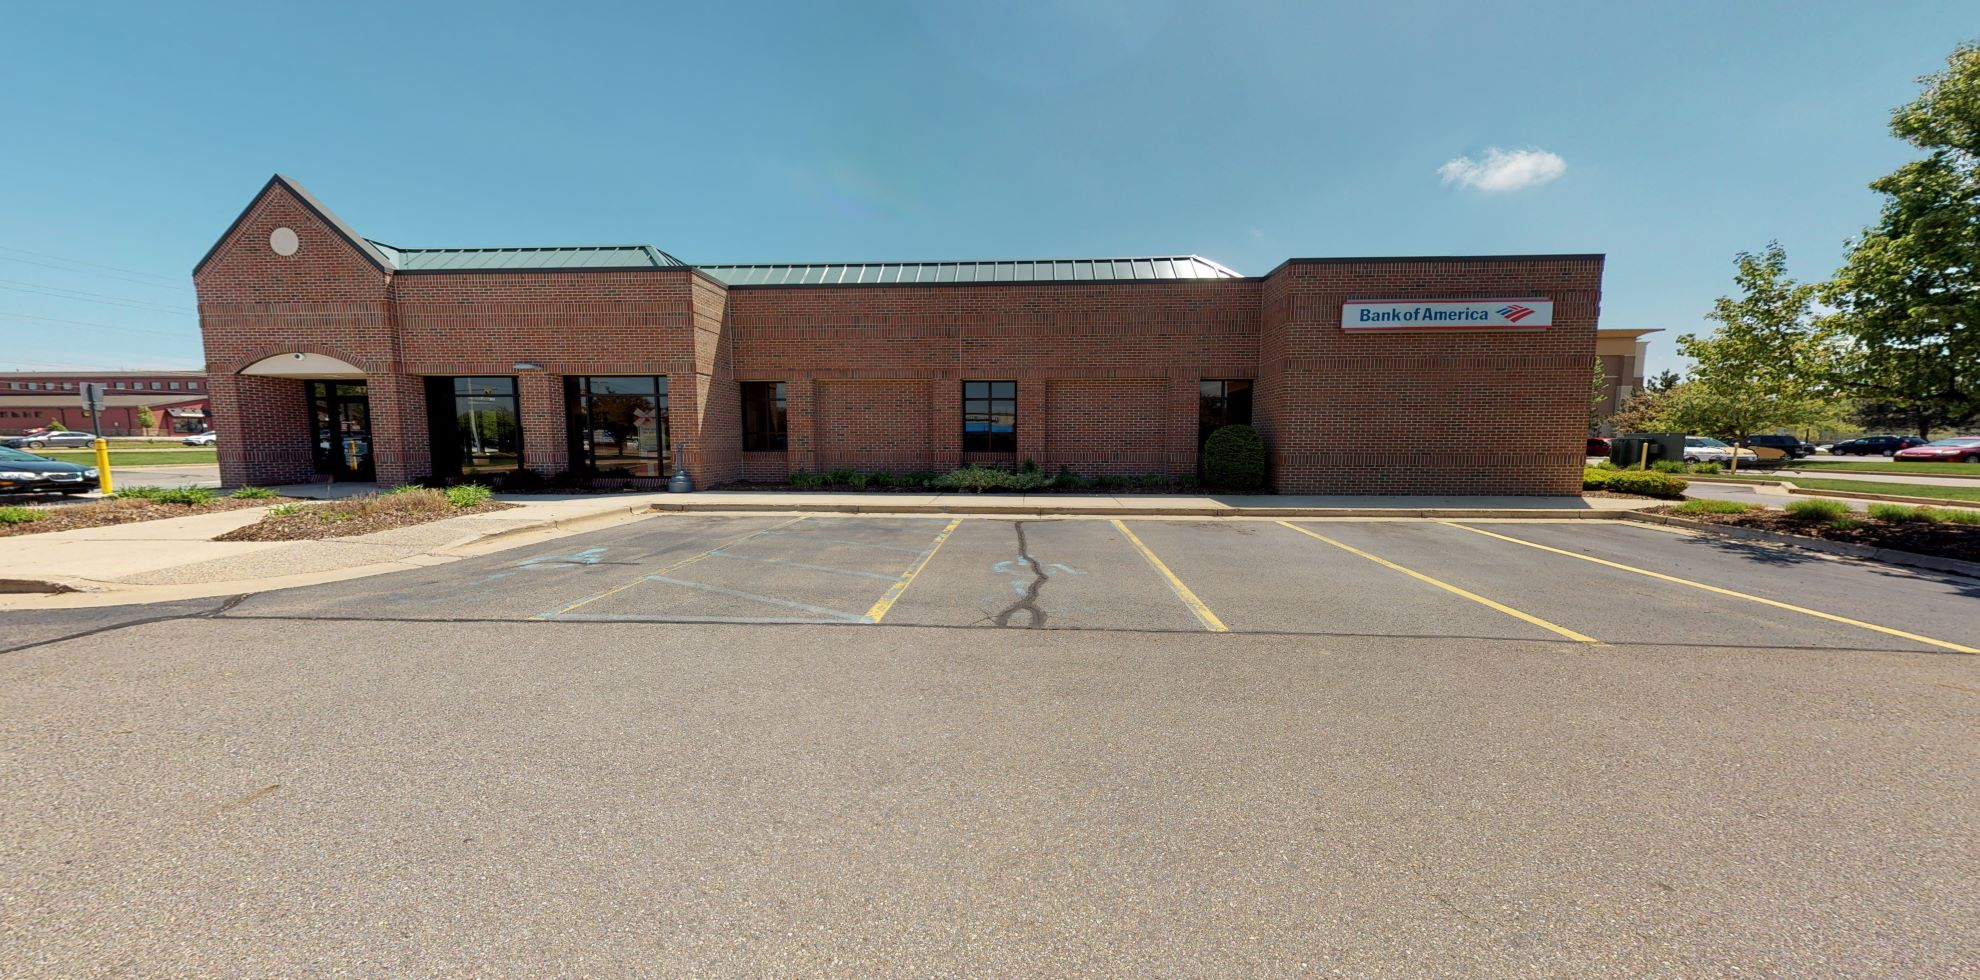 Bank of America financial center with drive-thru ATM | 4725 Wilson Ave SW, Grandville, MI 49418